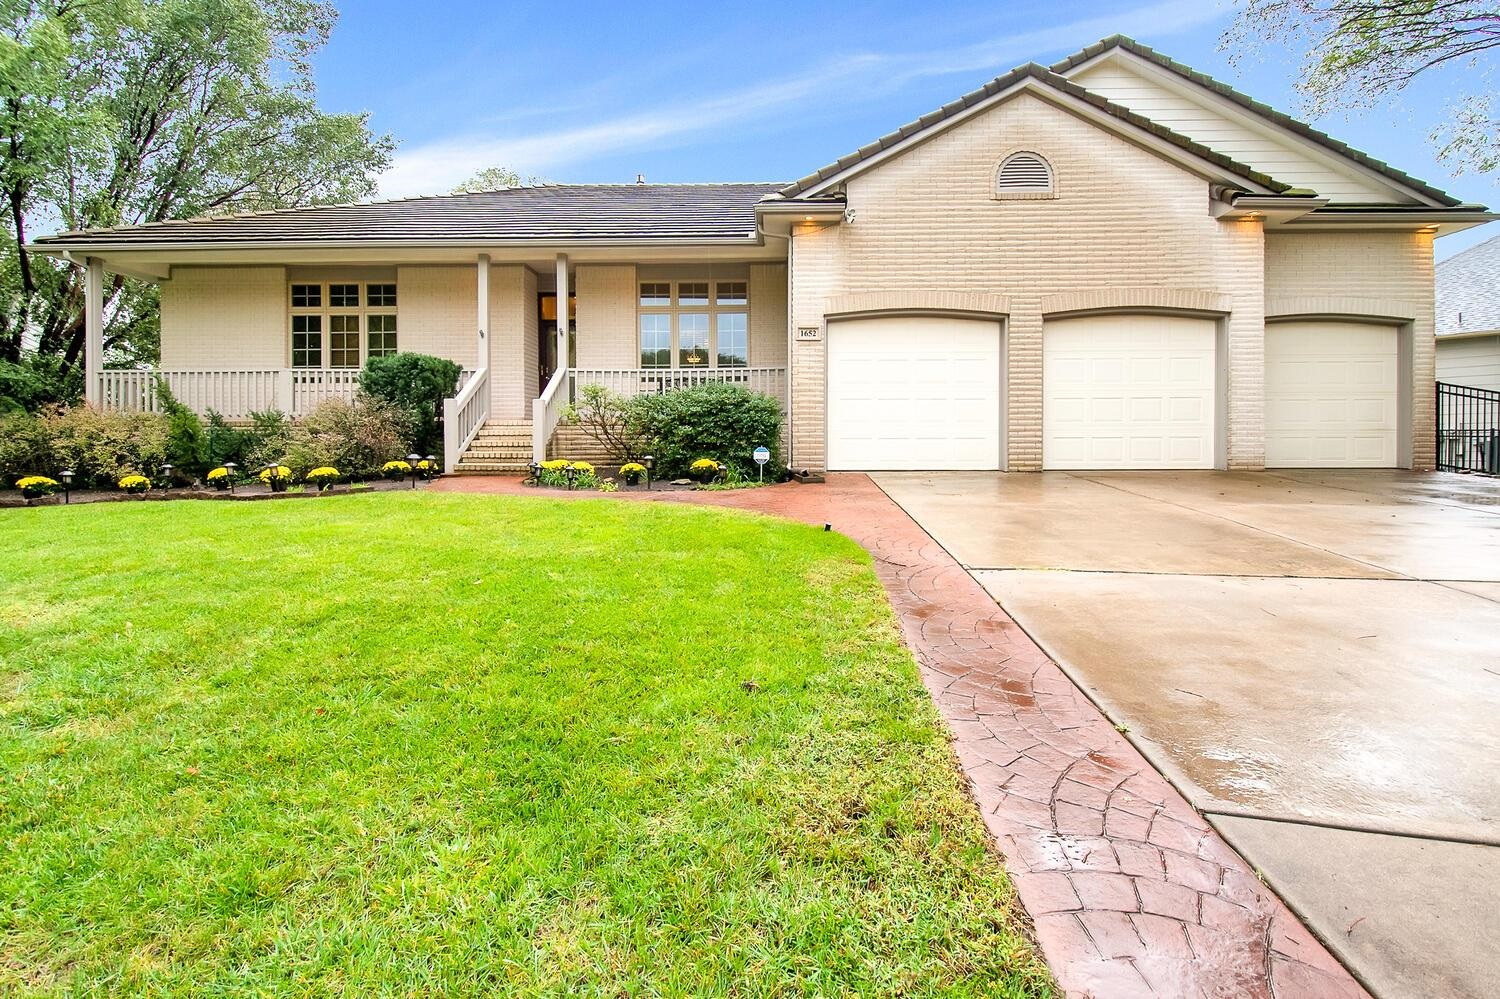 An amazing, one of a kind home that you don't want to miss!  This gorgeous 4 bedroom, 3.5 bathroom h